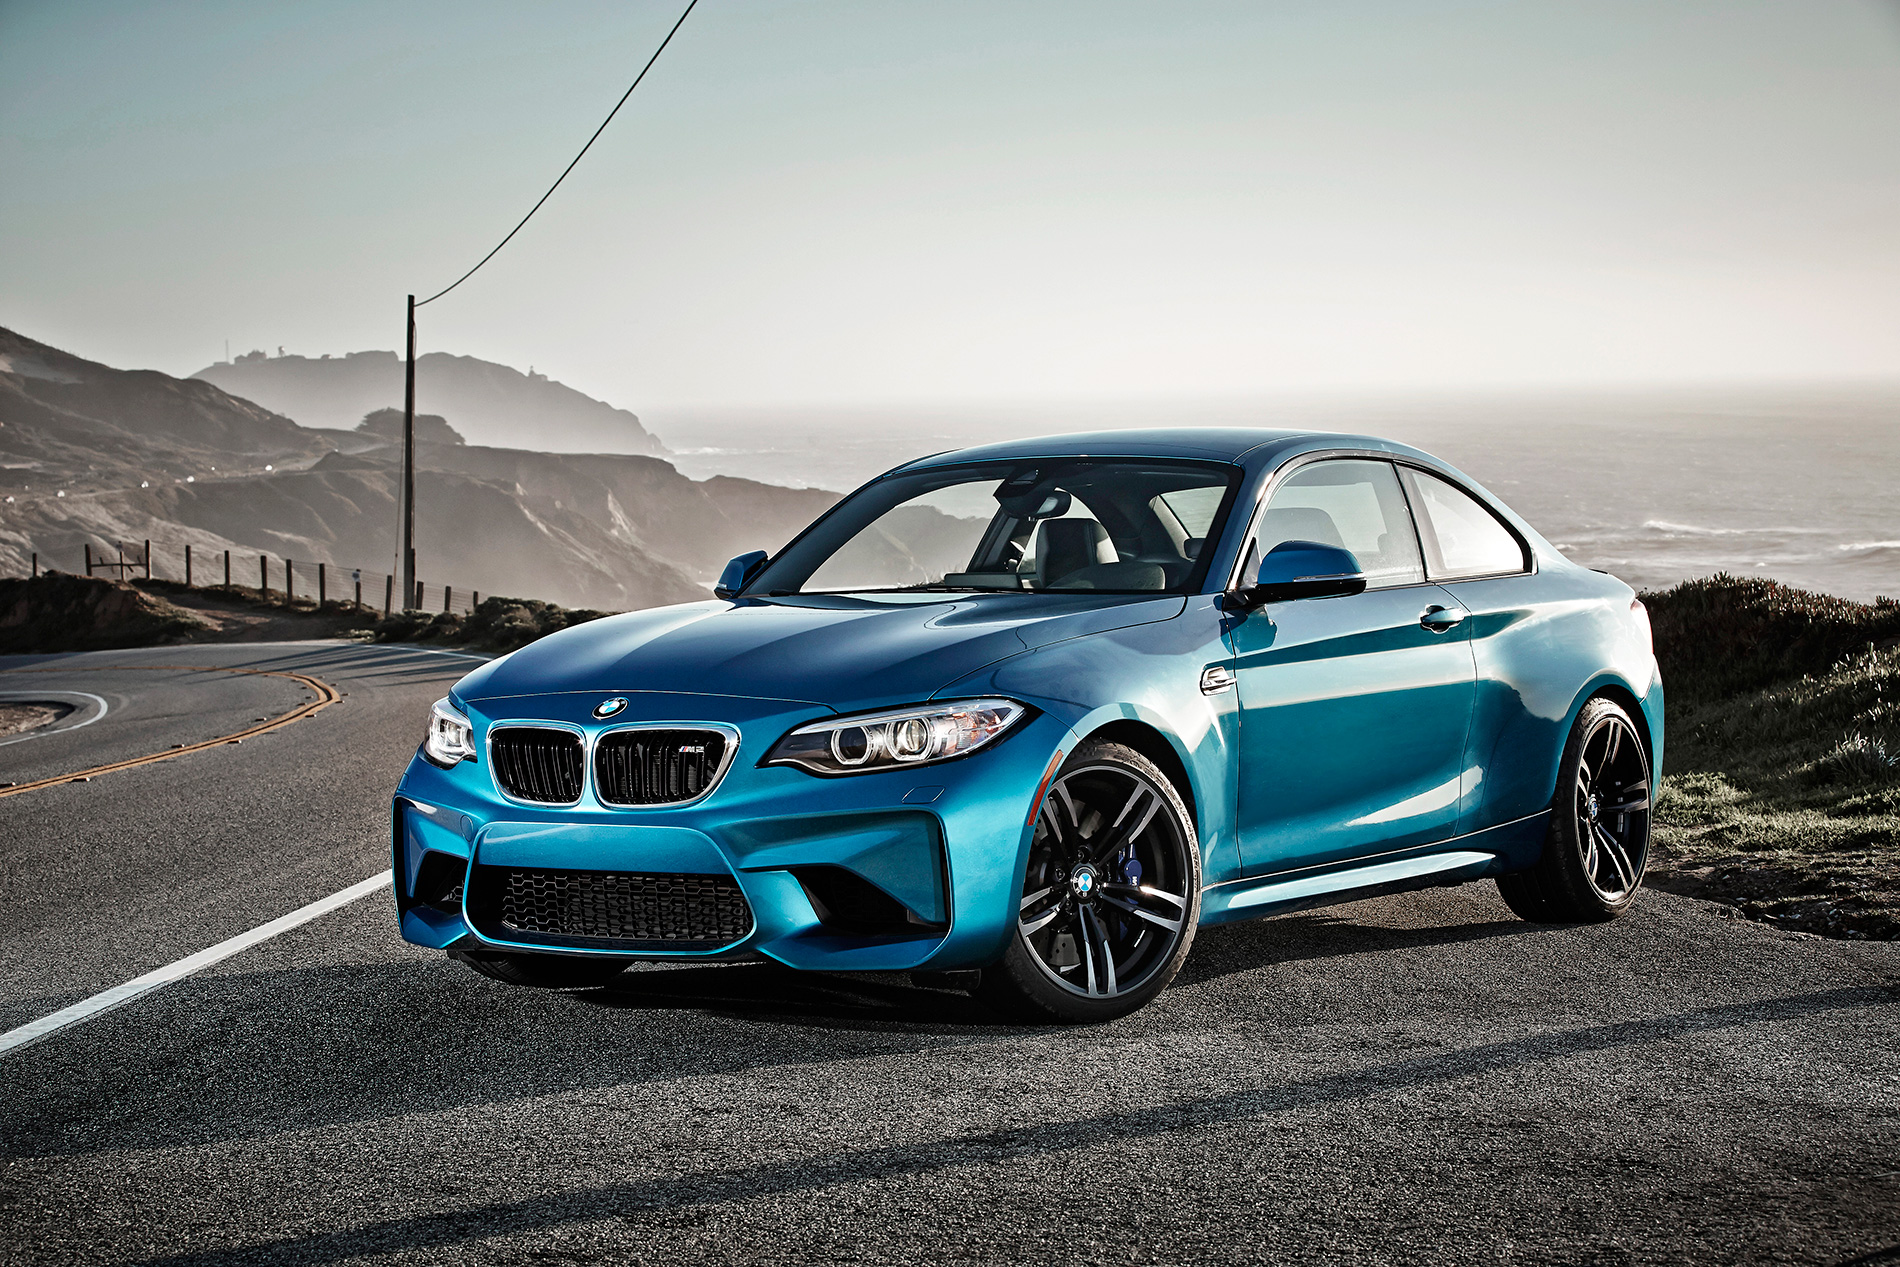 India Wallpaper 3d Hd Bmw Photo Gallery